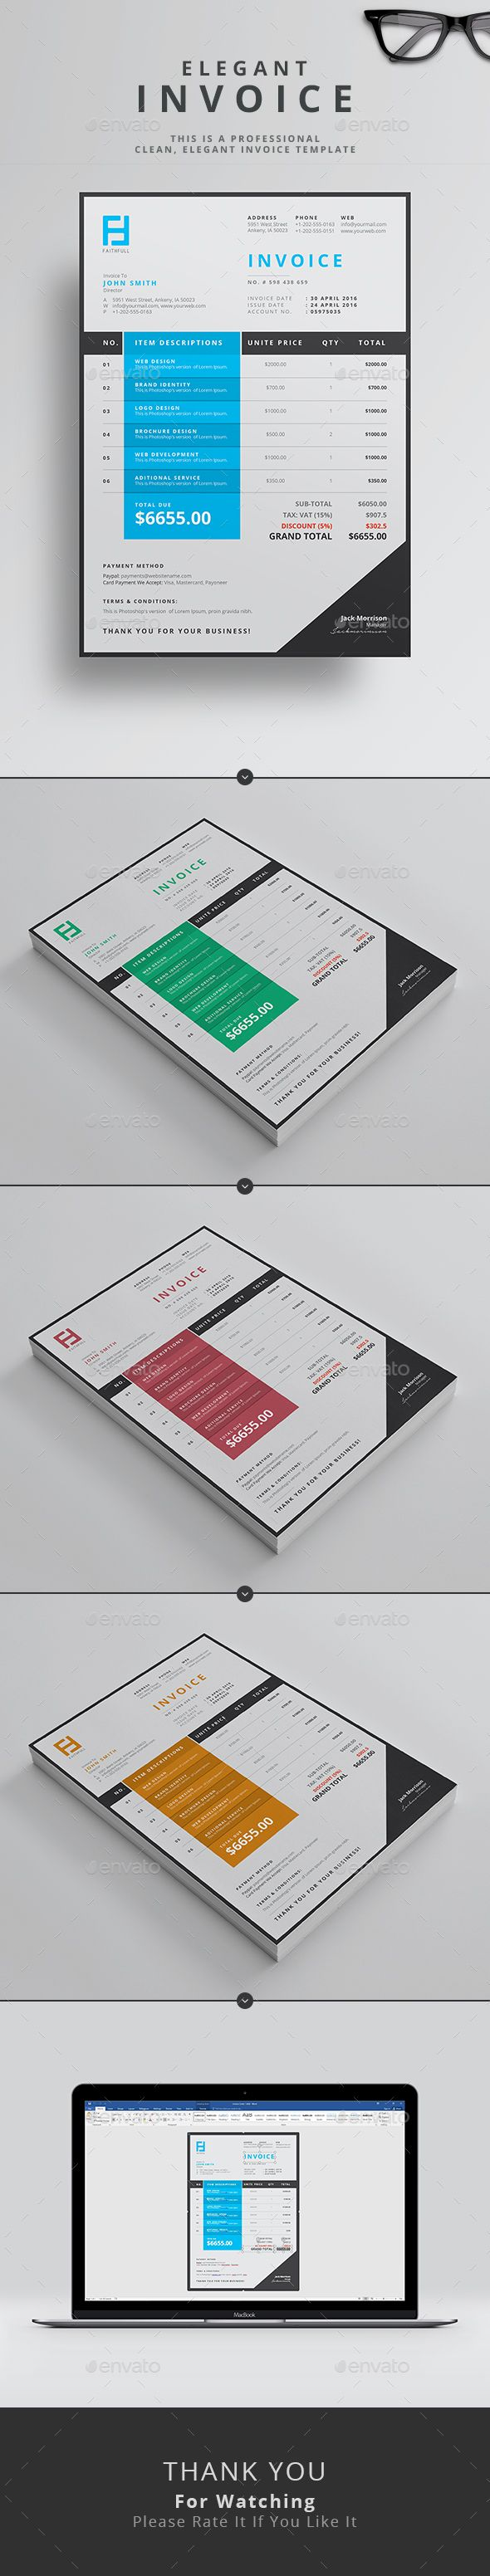 Invoice Template PSD. Download here: http://graphicriver.net/item/invoice-/15921945?ref=ksioks